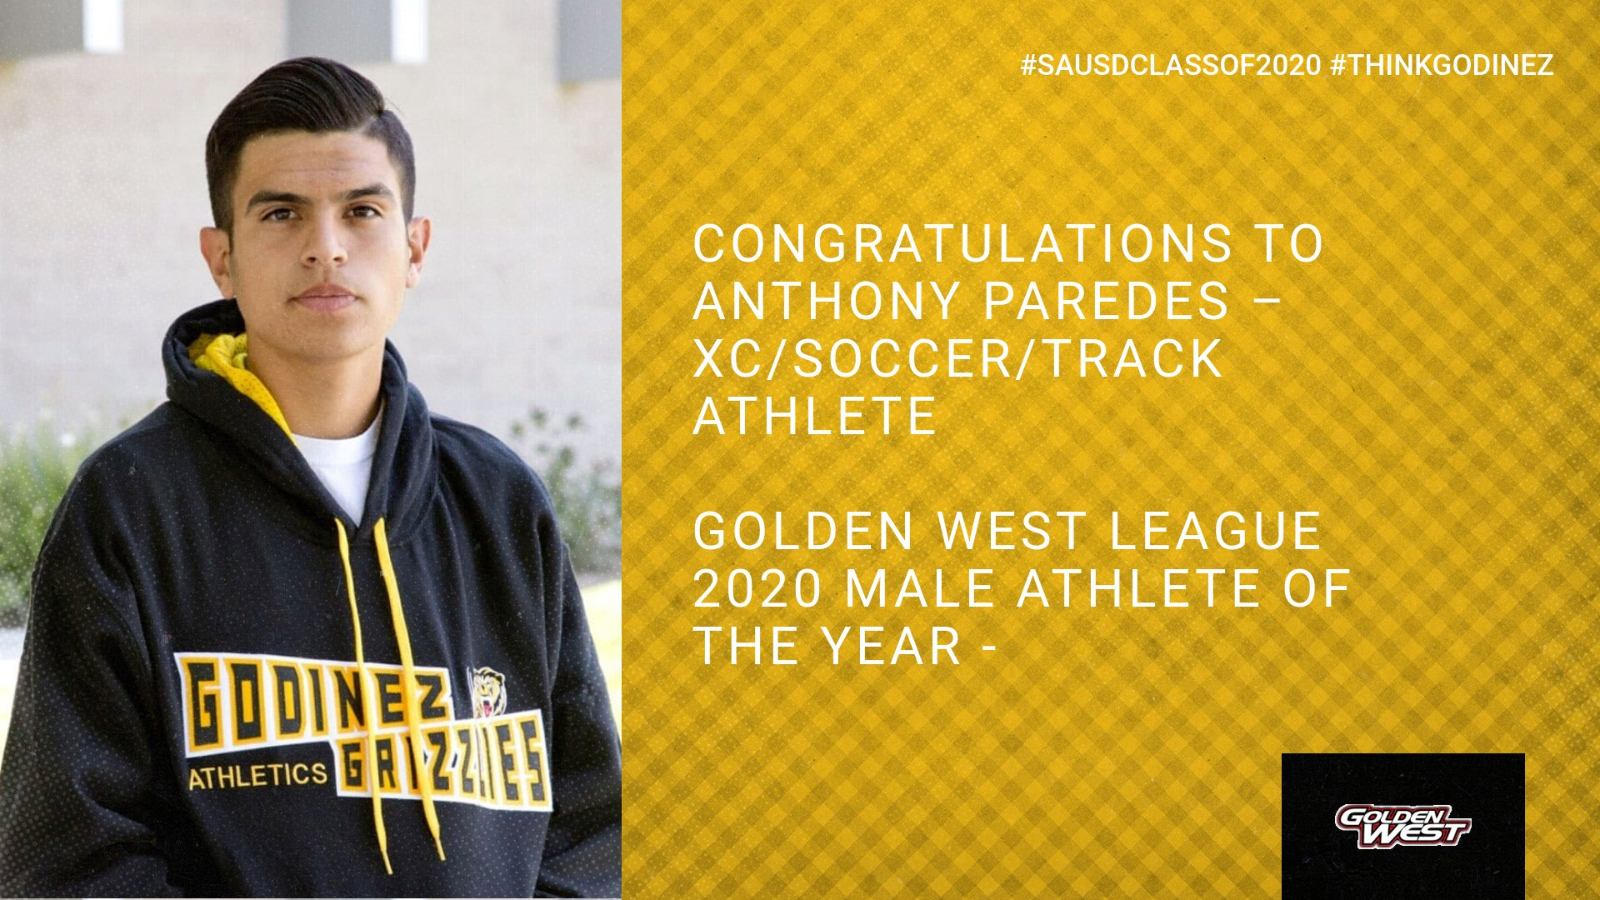 Anthony Paredes – Godinez & Golden West League 2020 Male Athlete of the Year